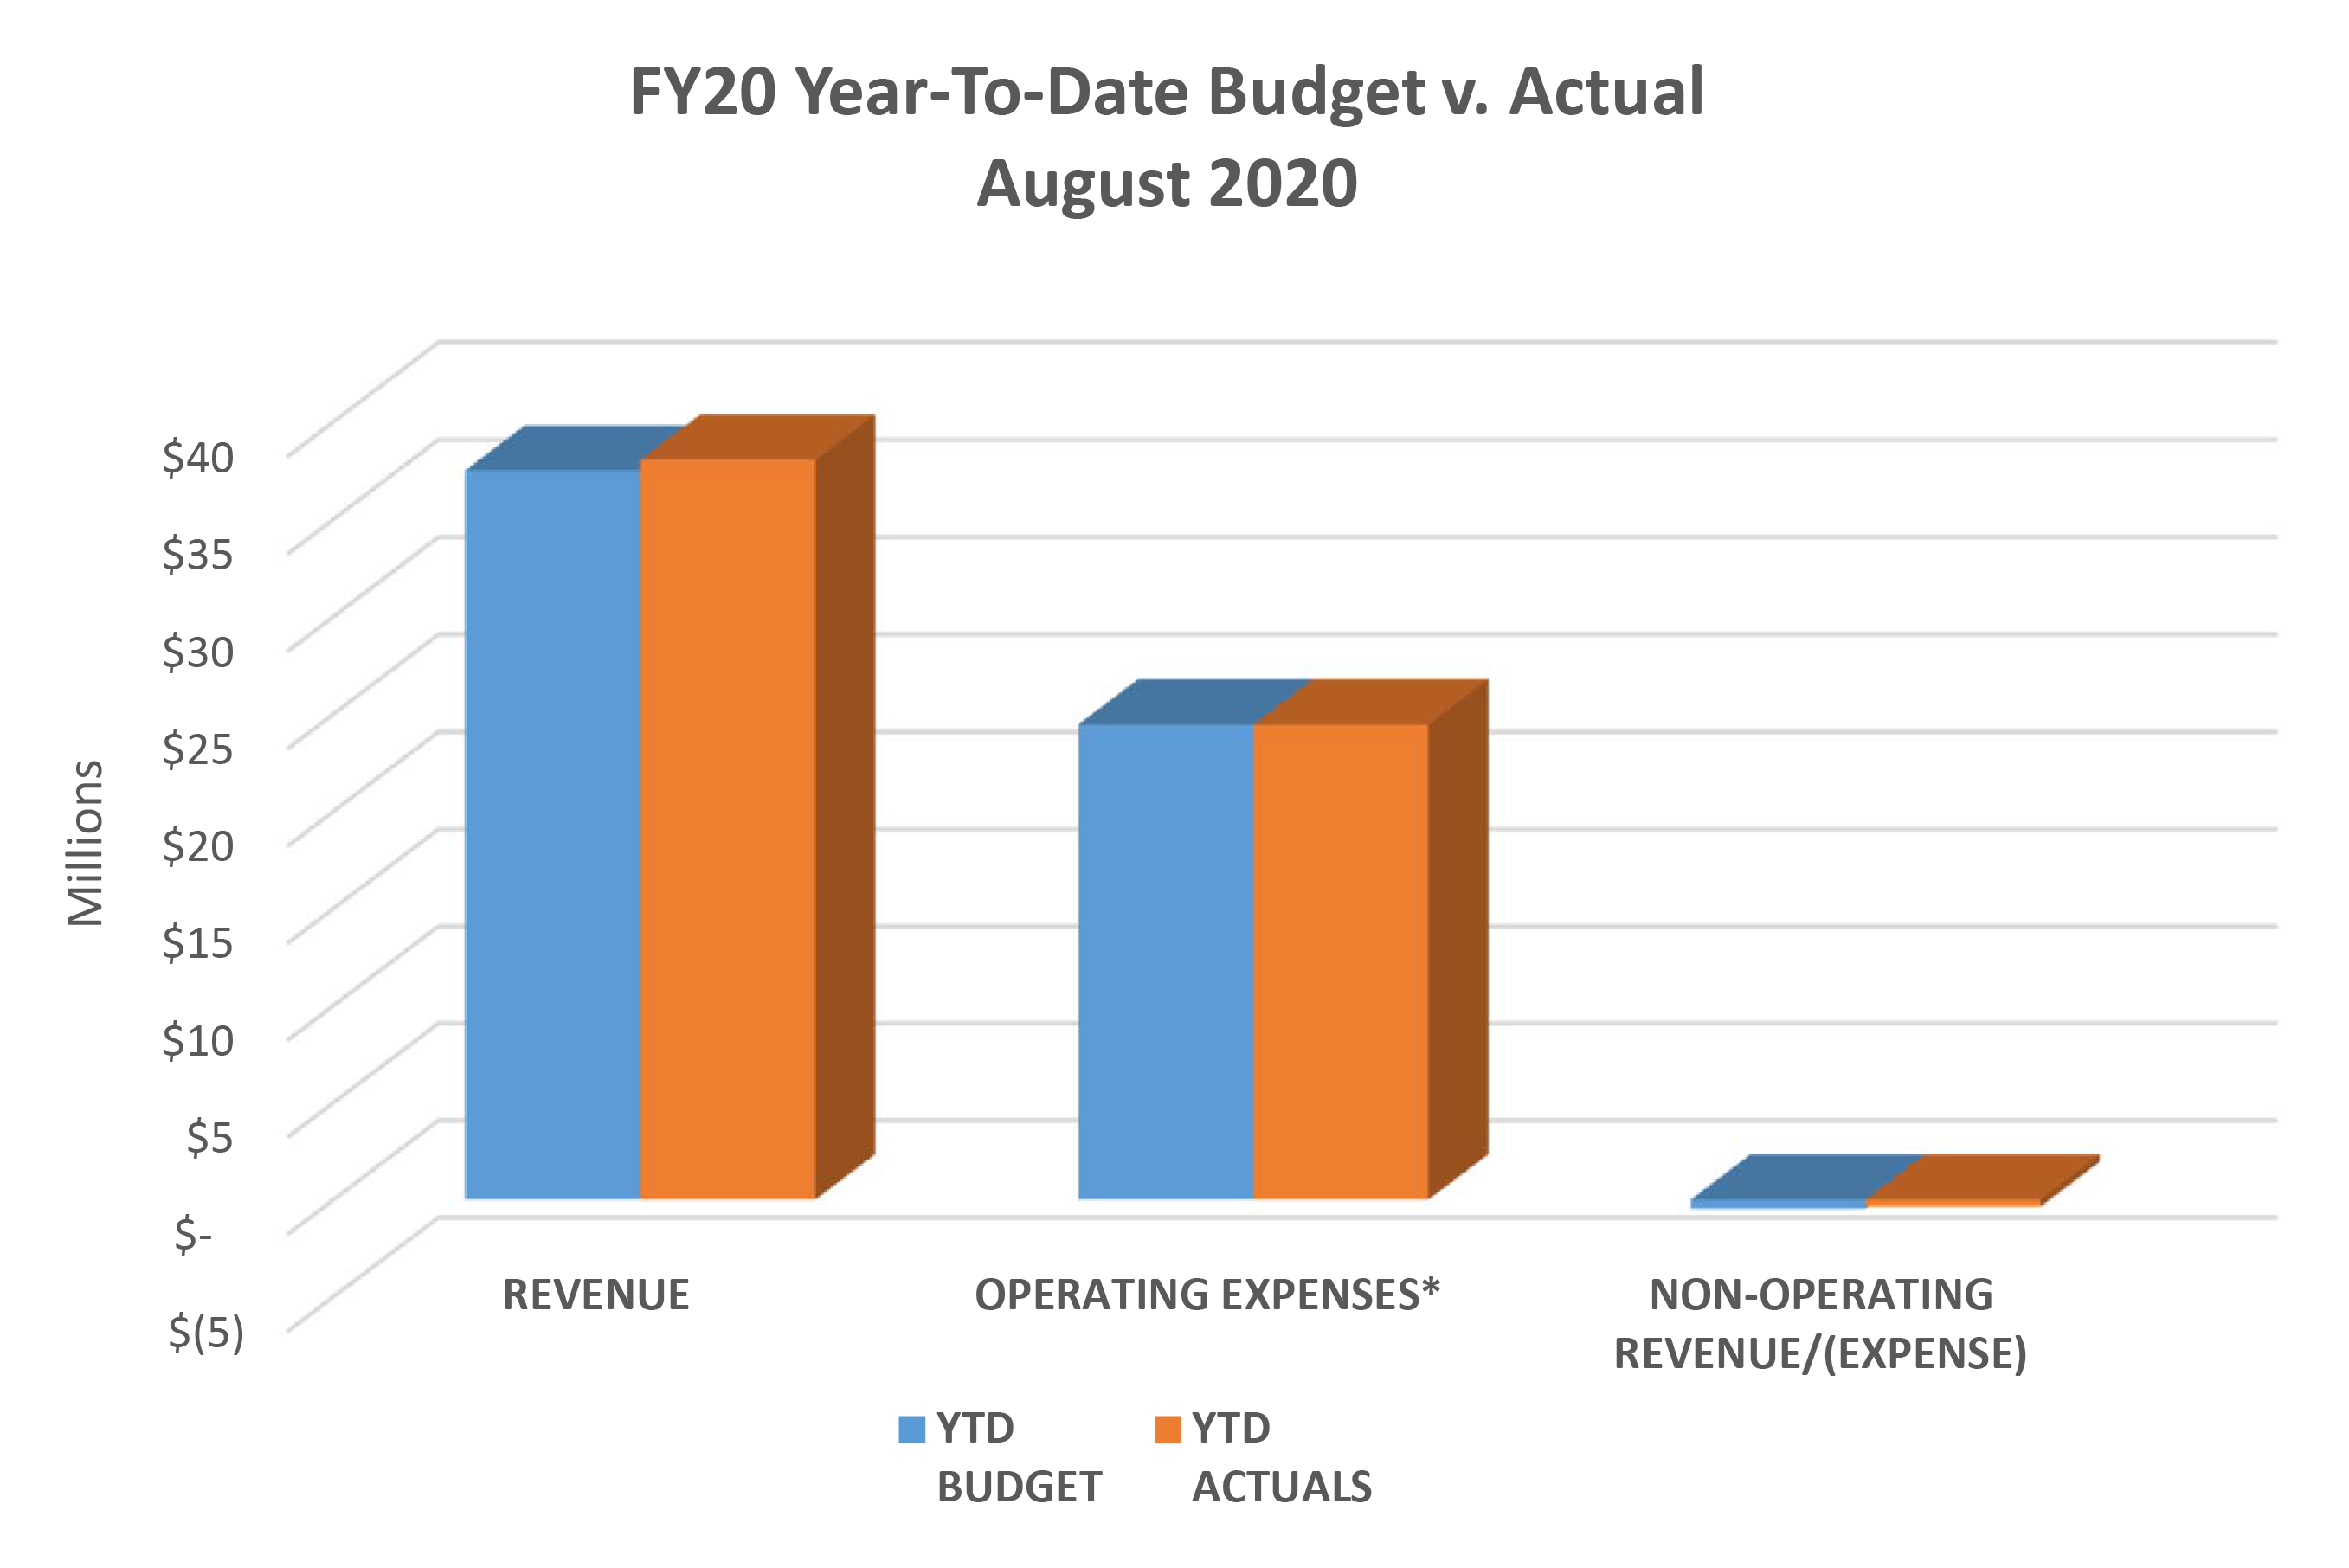 FY20 Year-To-Date Budget v. Actual for August